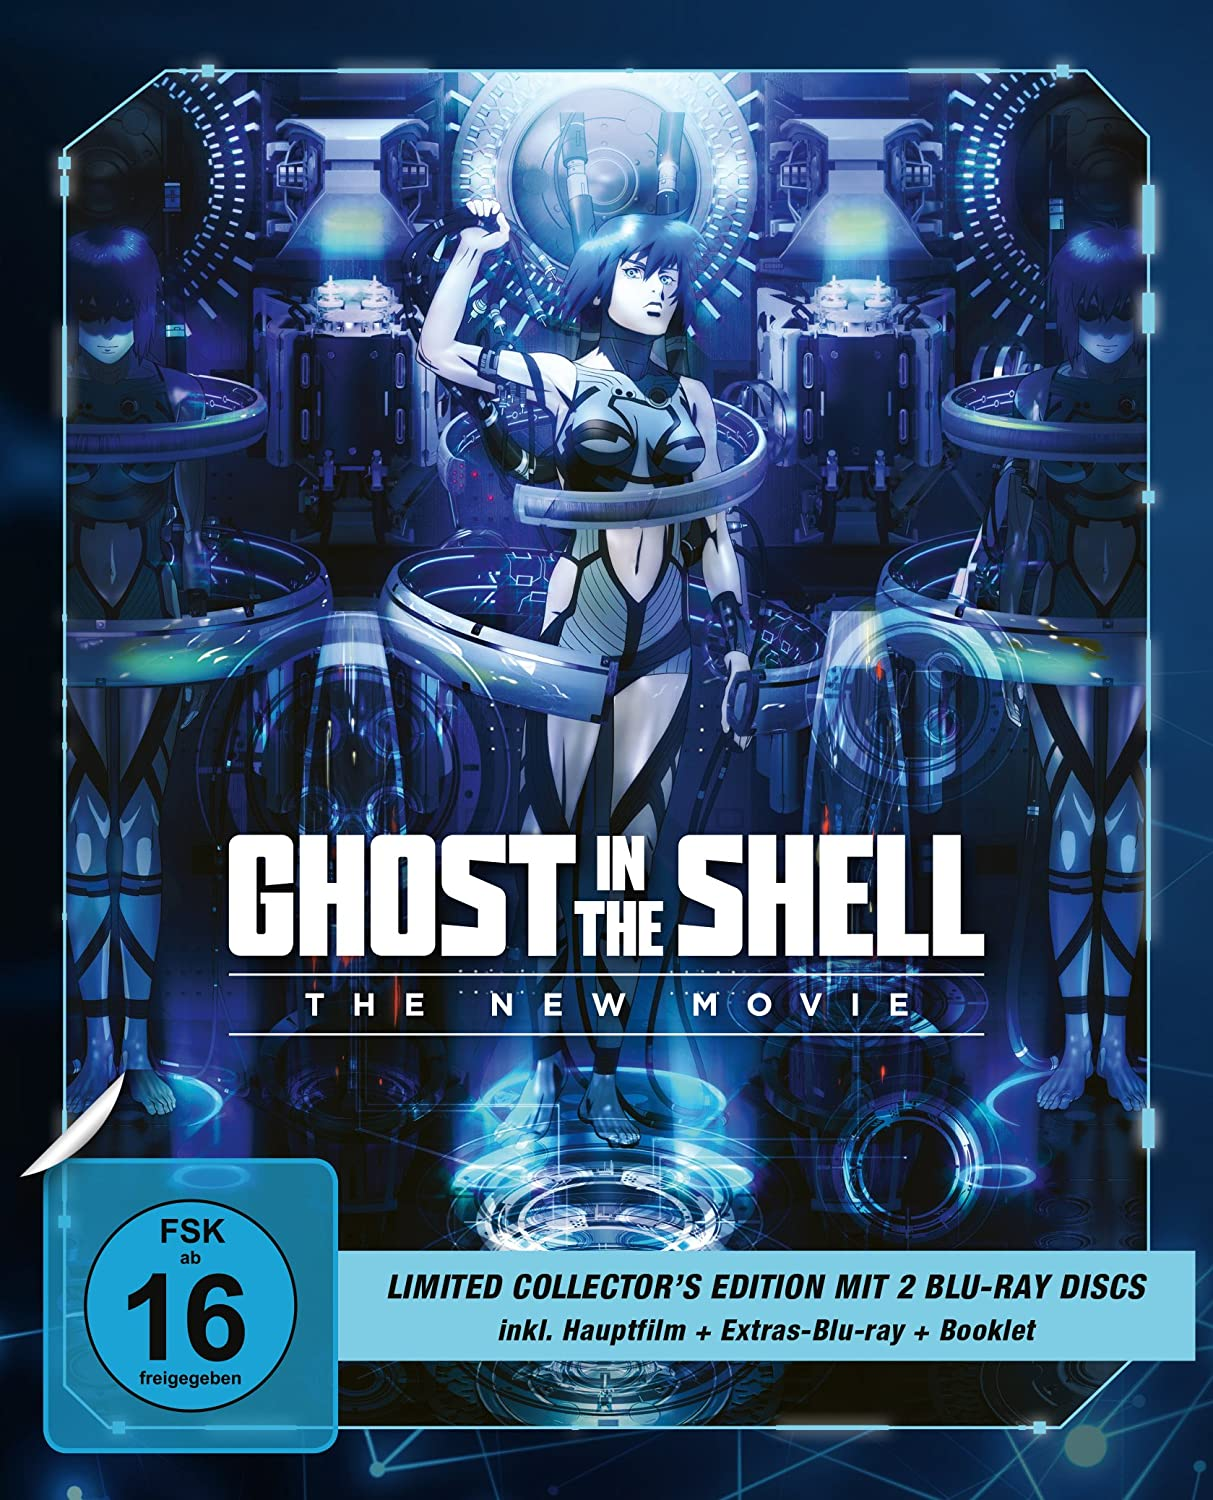 Ghost in the Shell - The New Movie - Limited Collectors Edition Blu-ray: Amazon.es: Kise, Kazuchika: Cine y Series TV